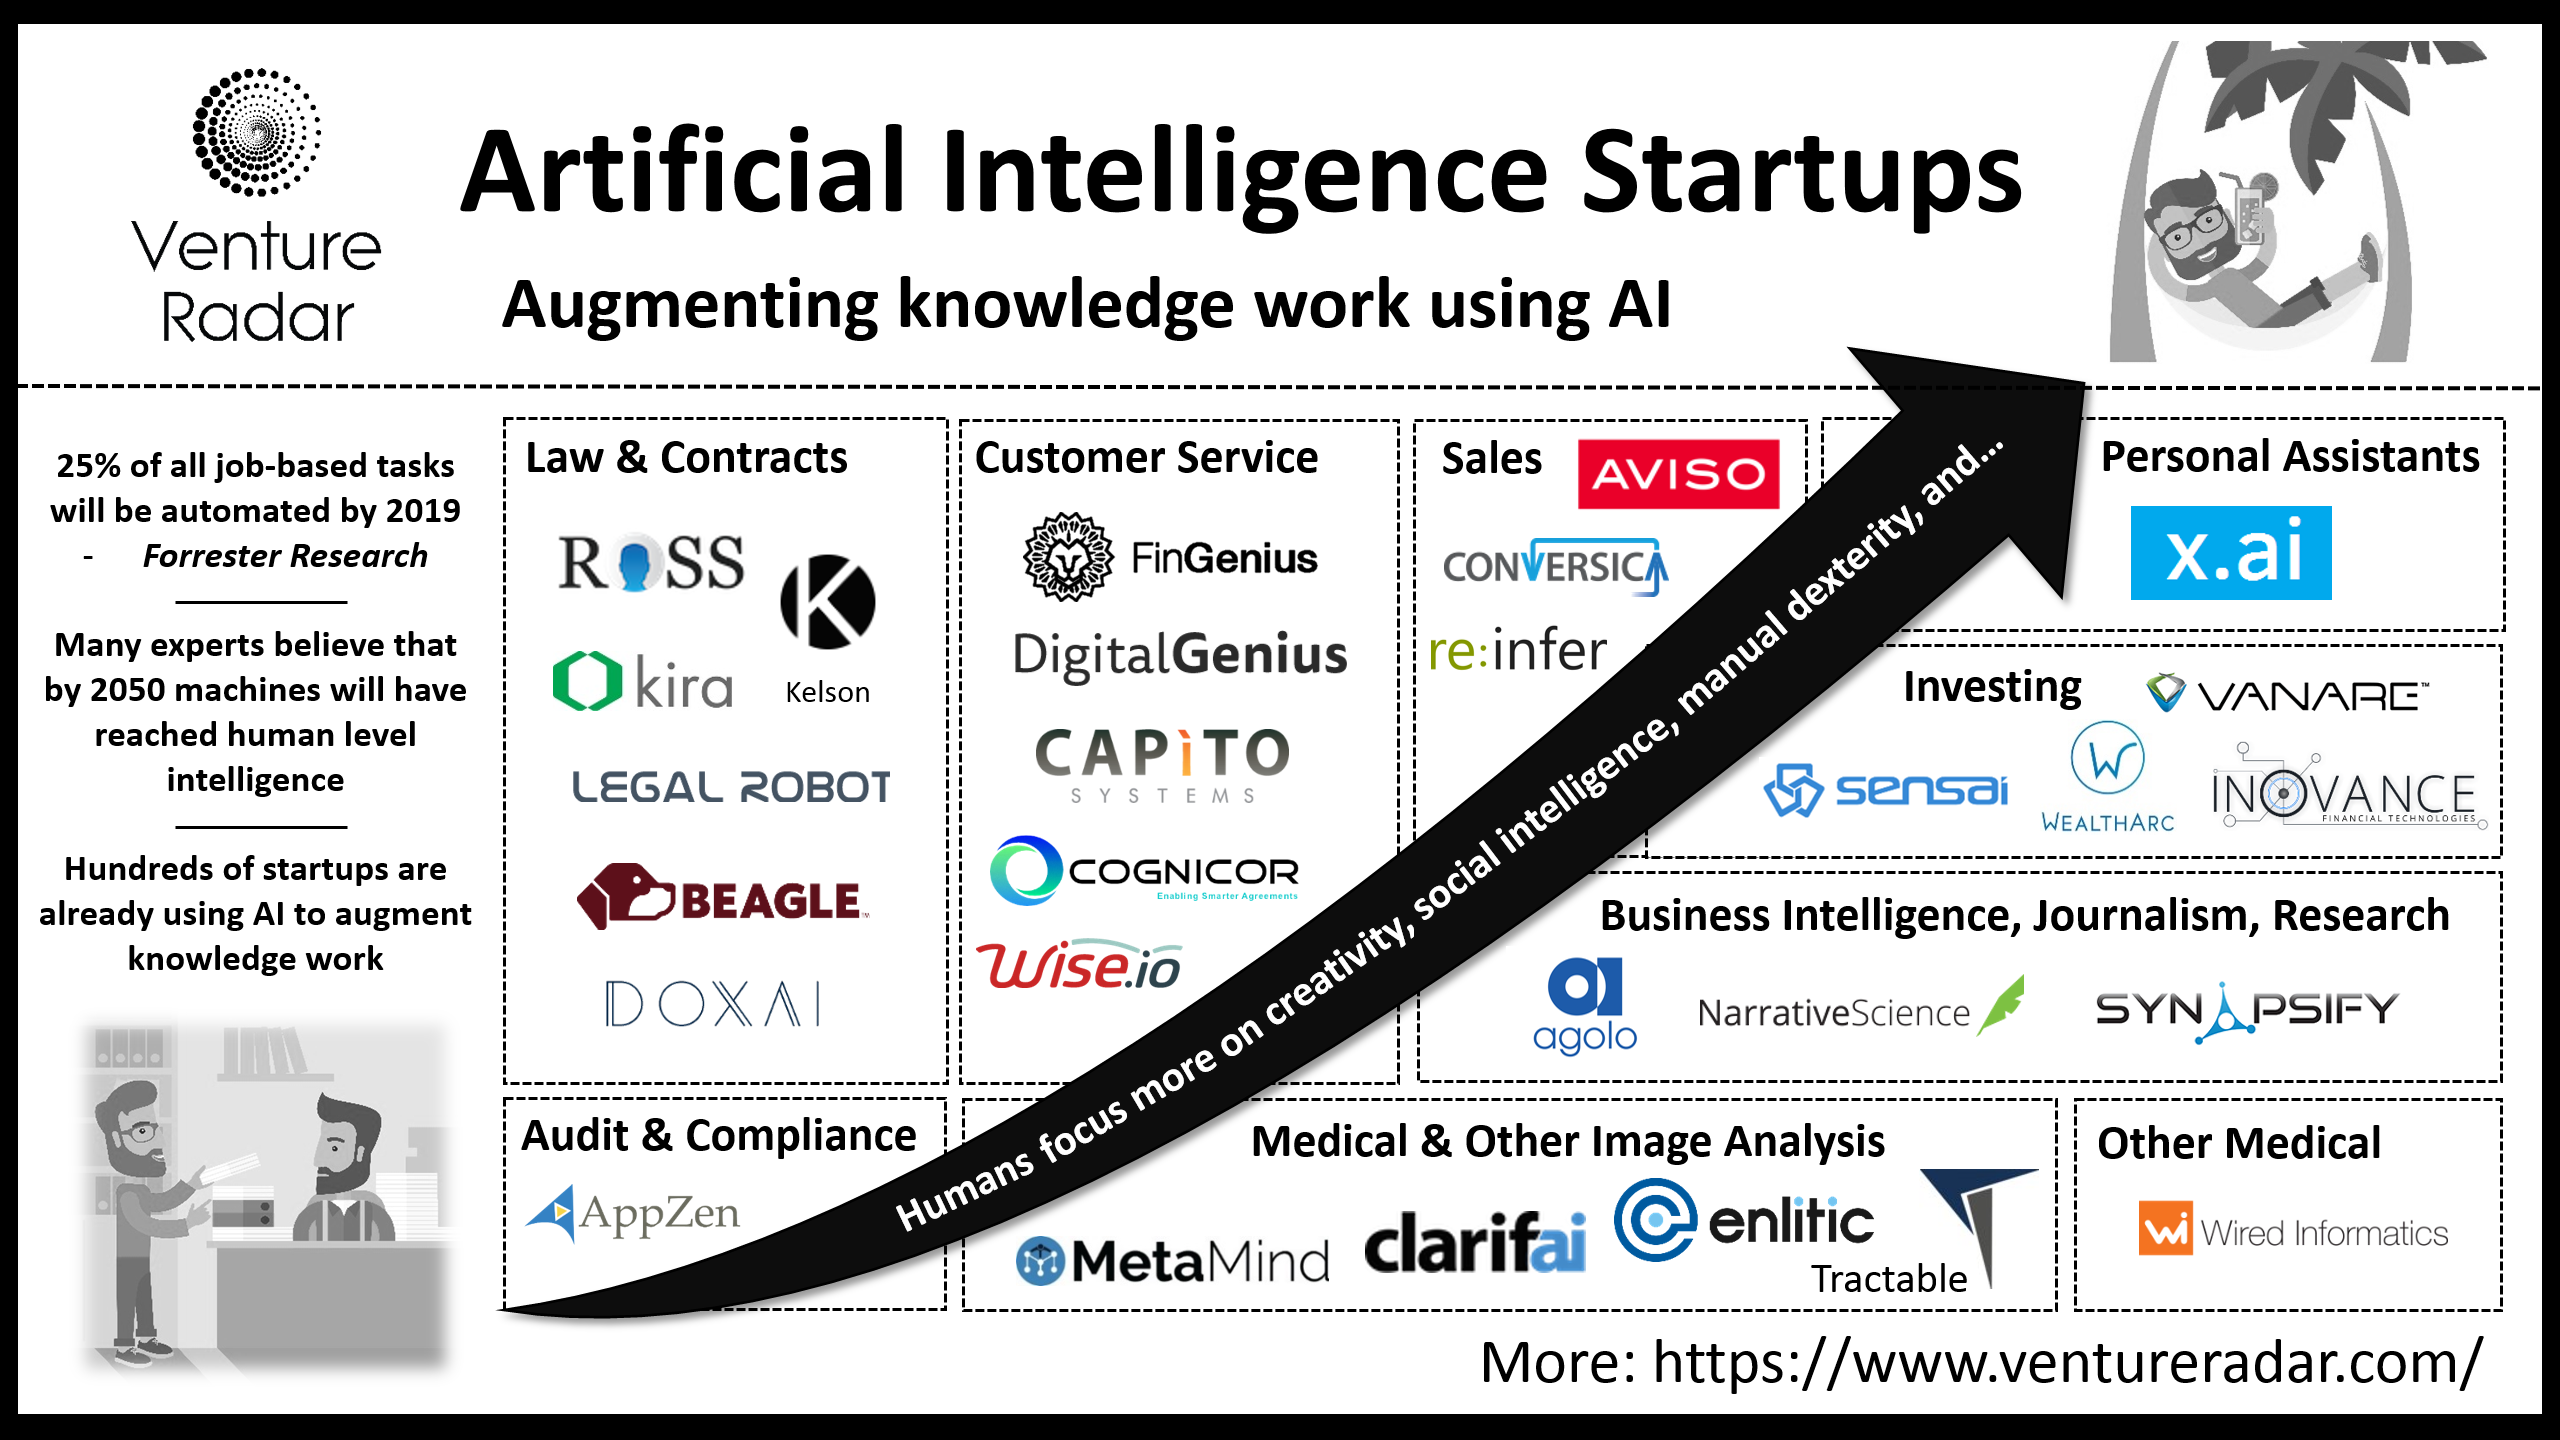 Leading startups using AI to augment knowledge work